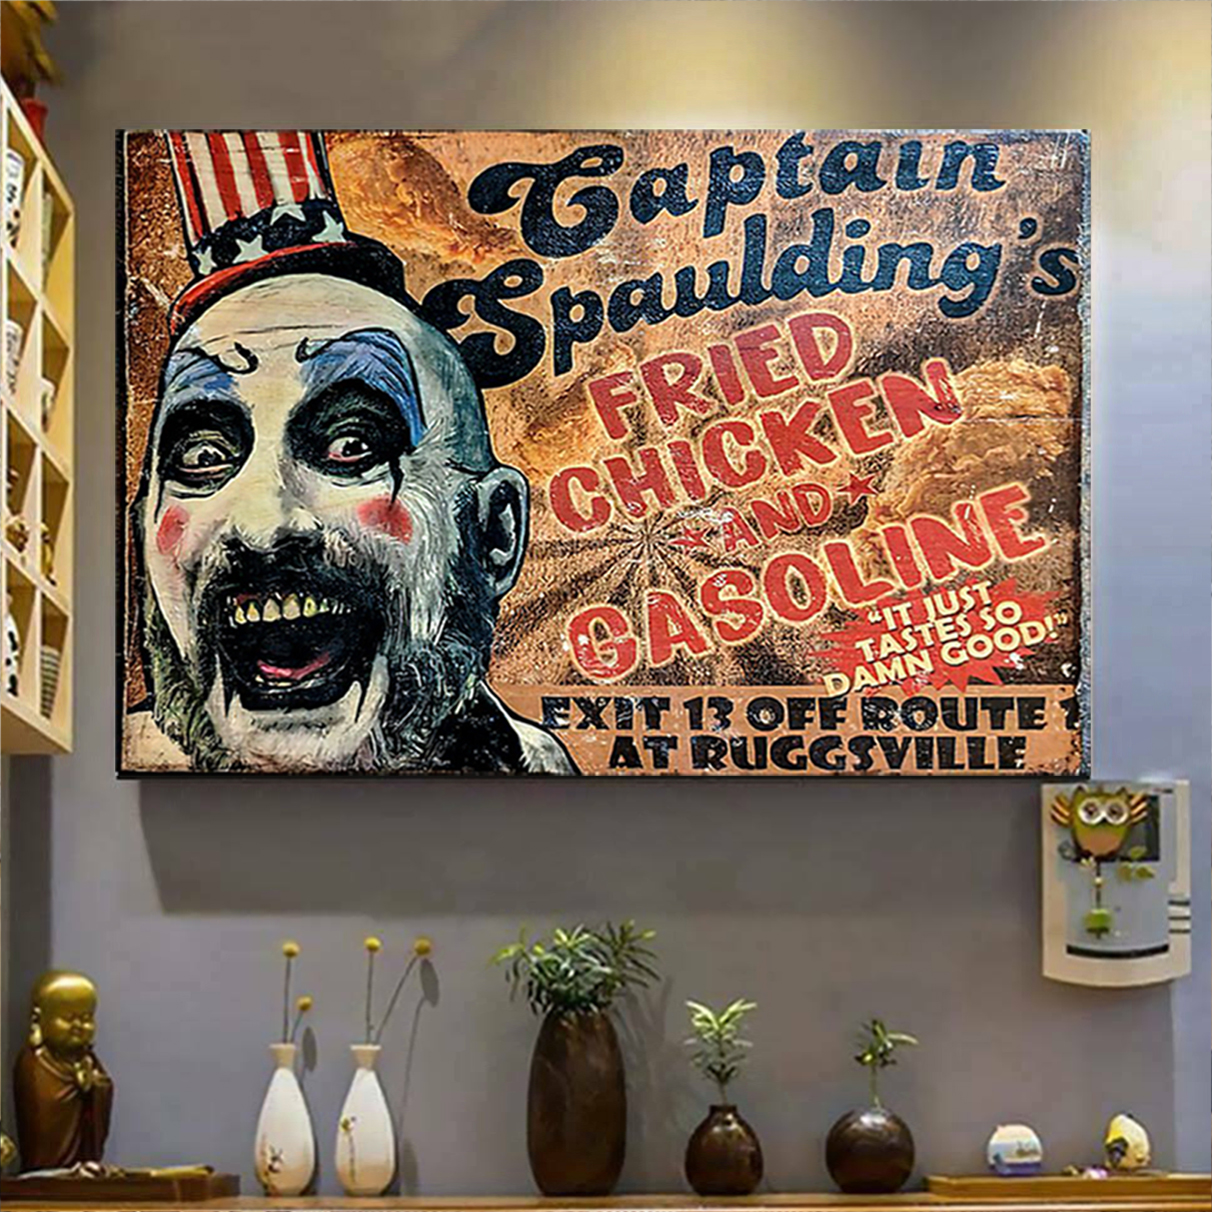 Captain spaulding's fried chicken and gasonline poster A3